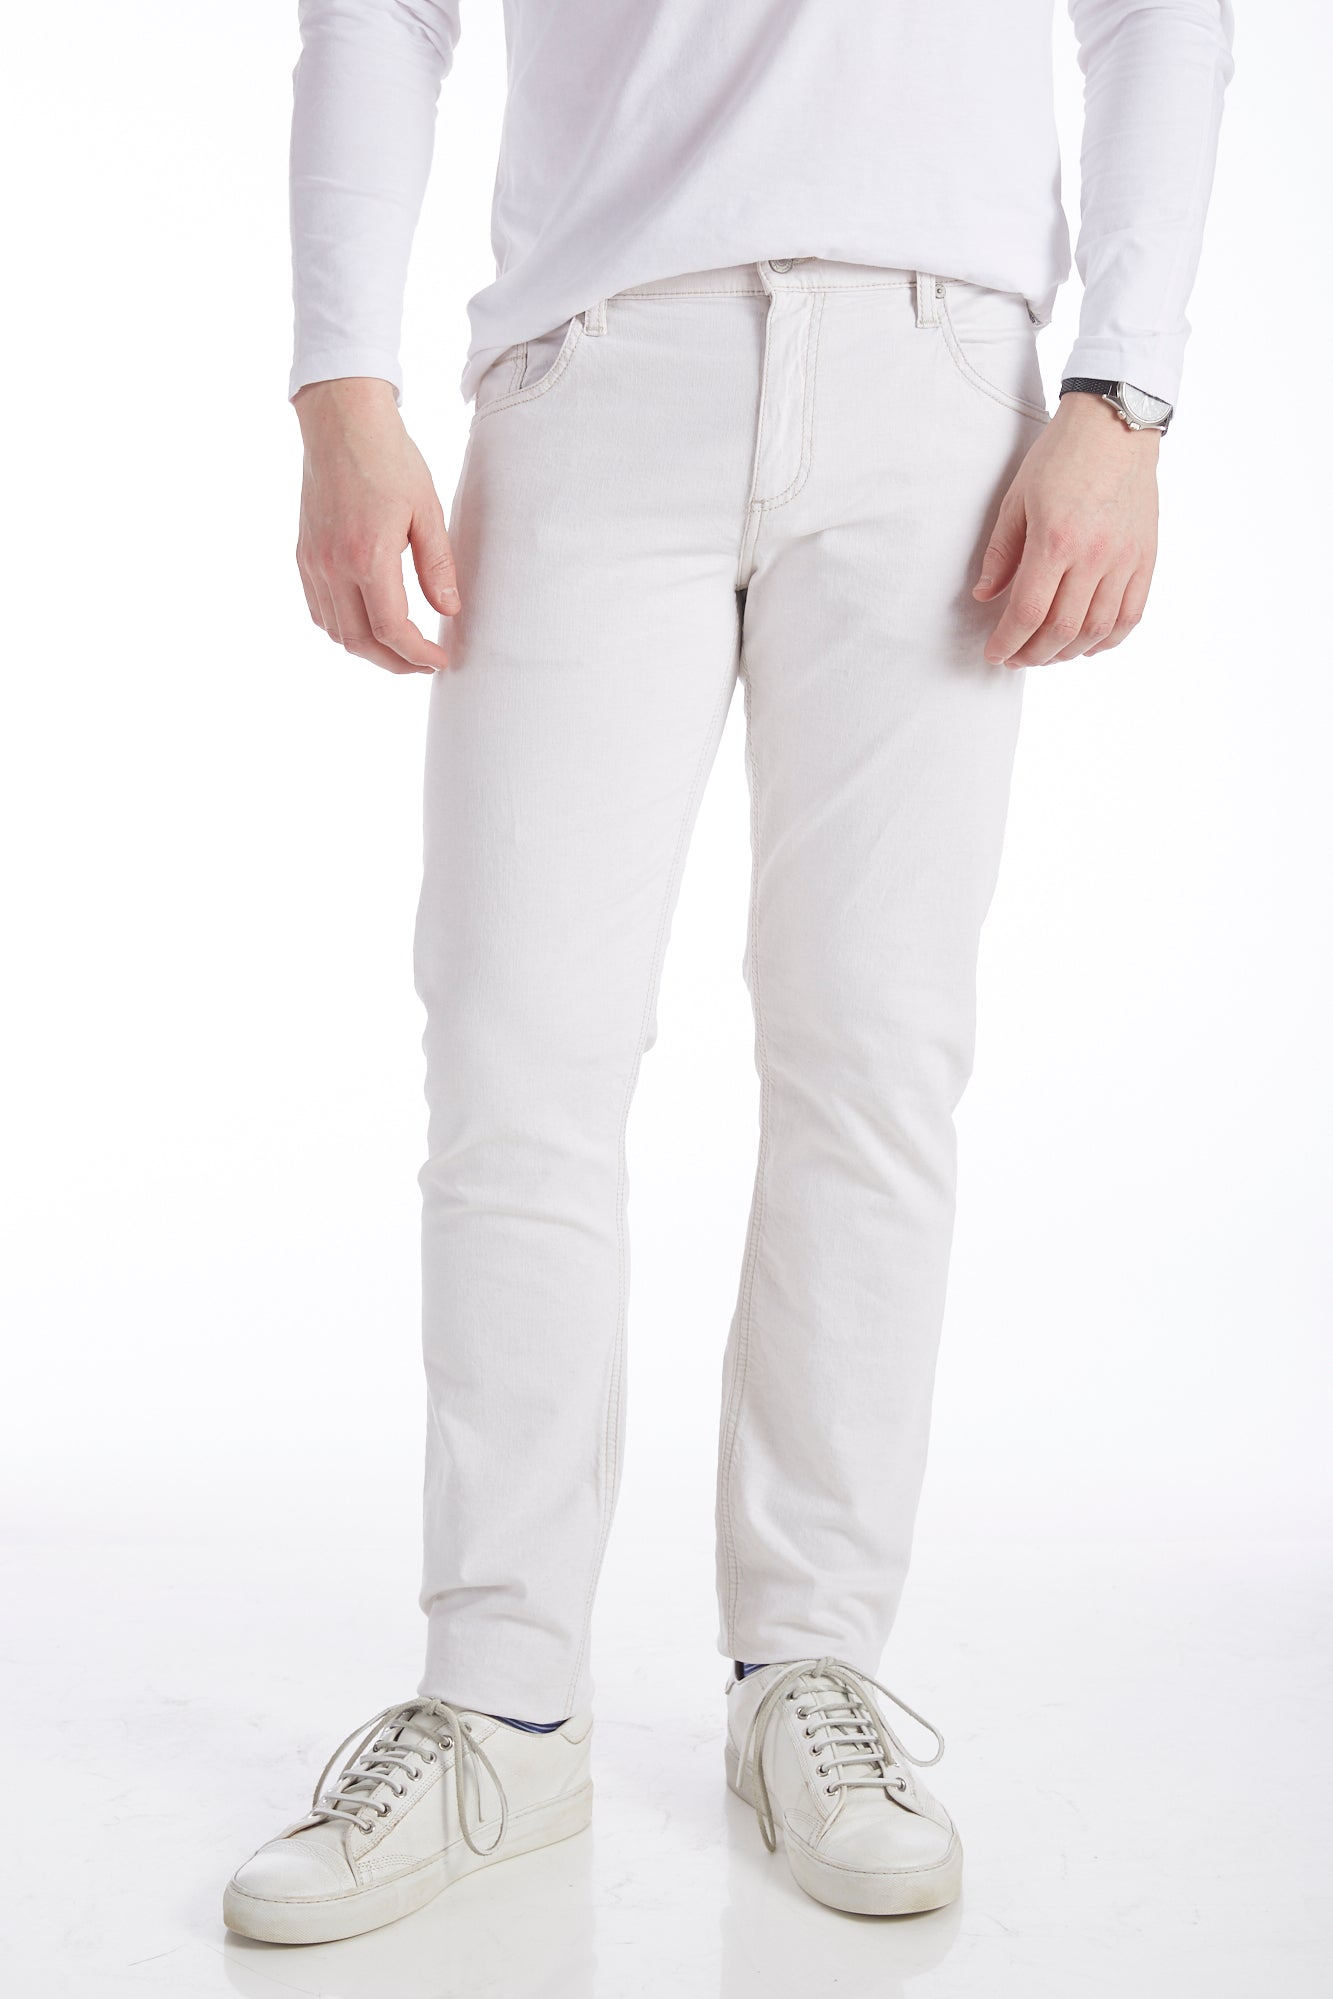 Alberto Dynamic Superfit Off-White Jeans - Pants - Alberto - LALONDE's